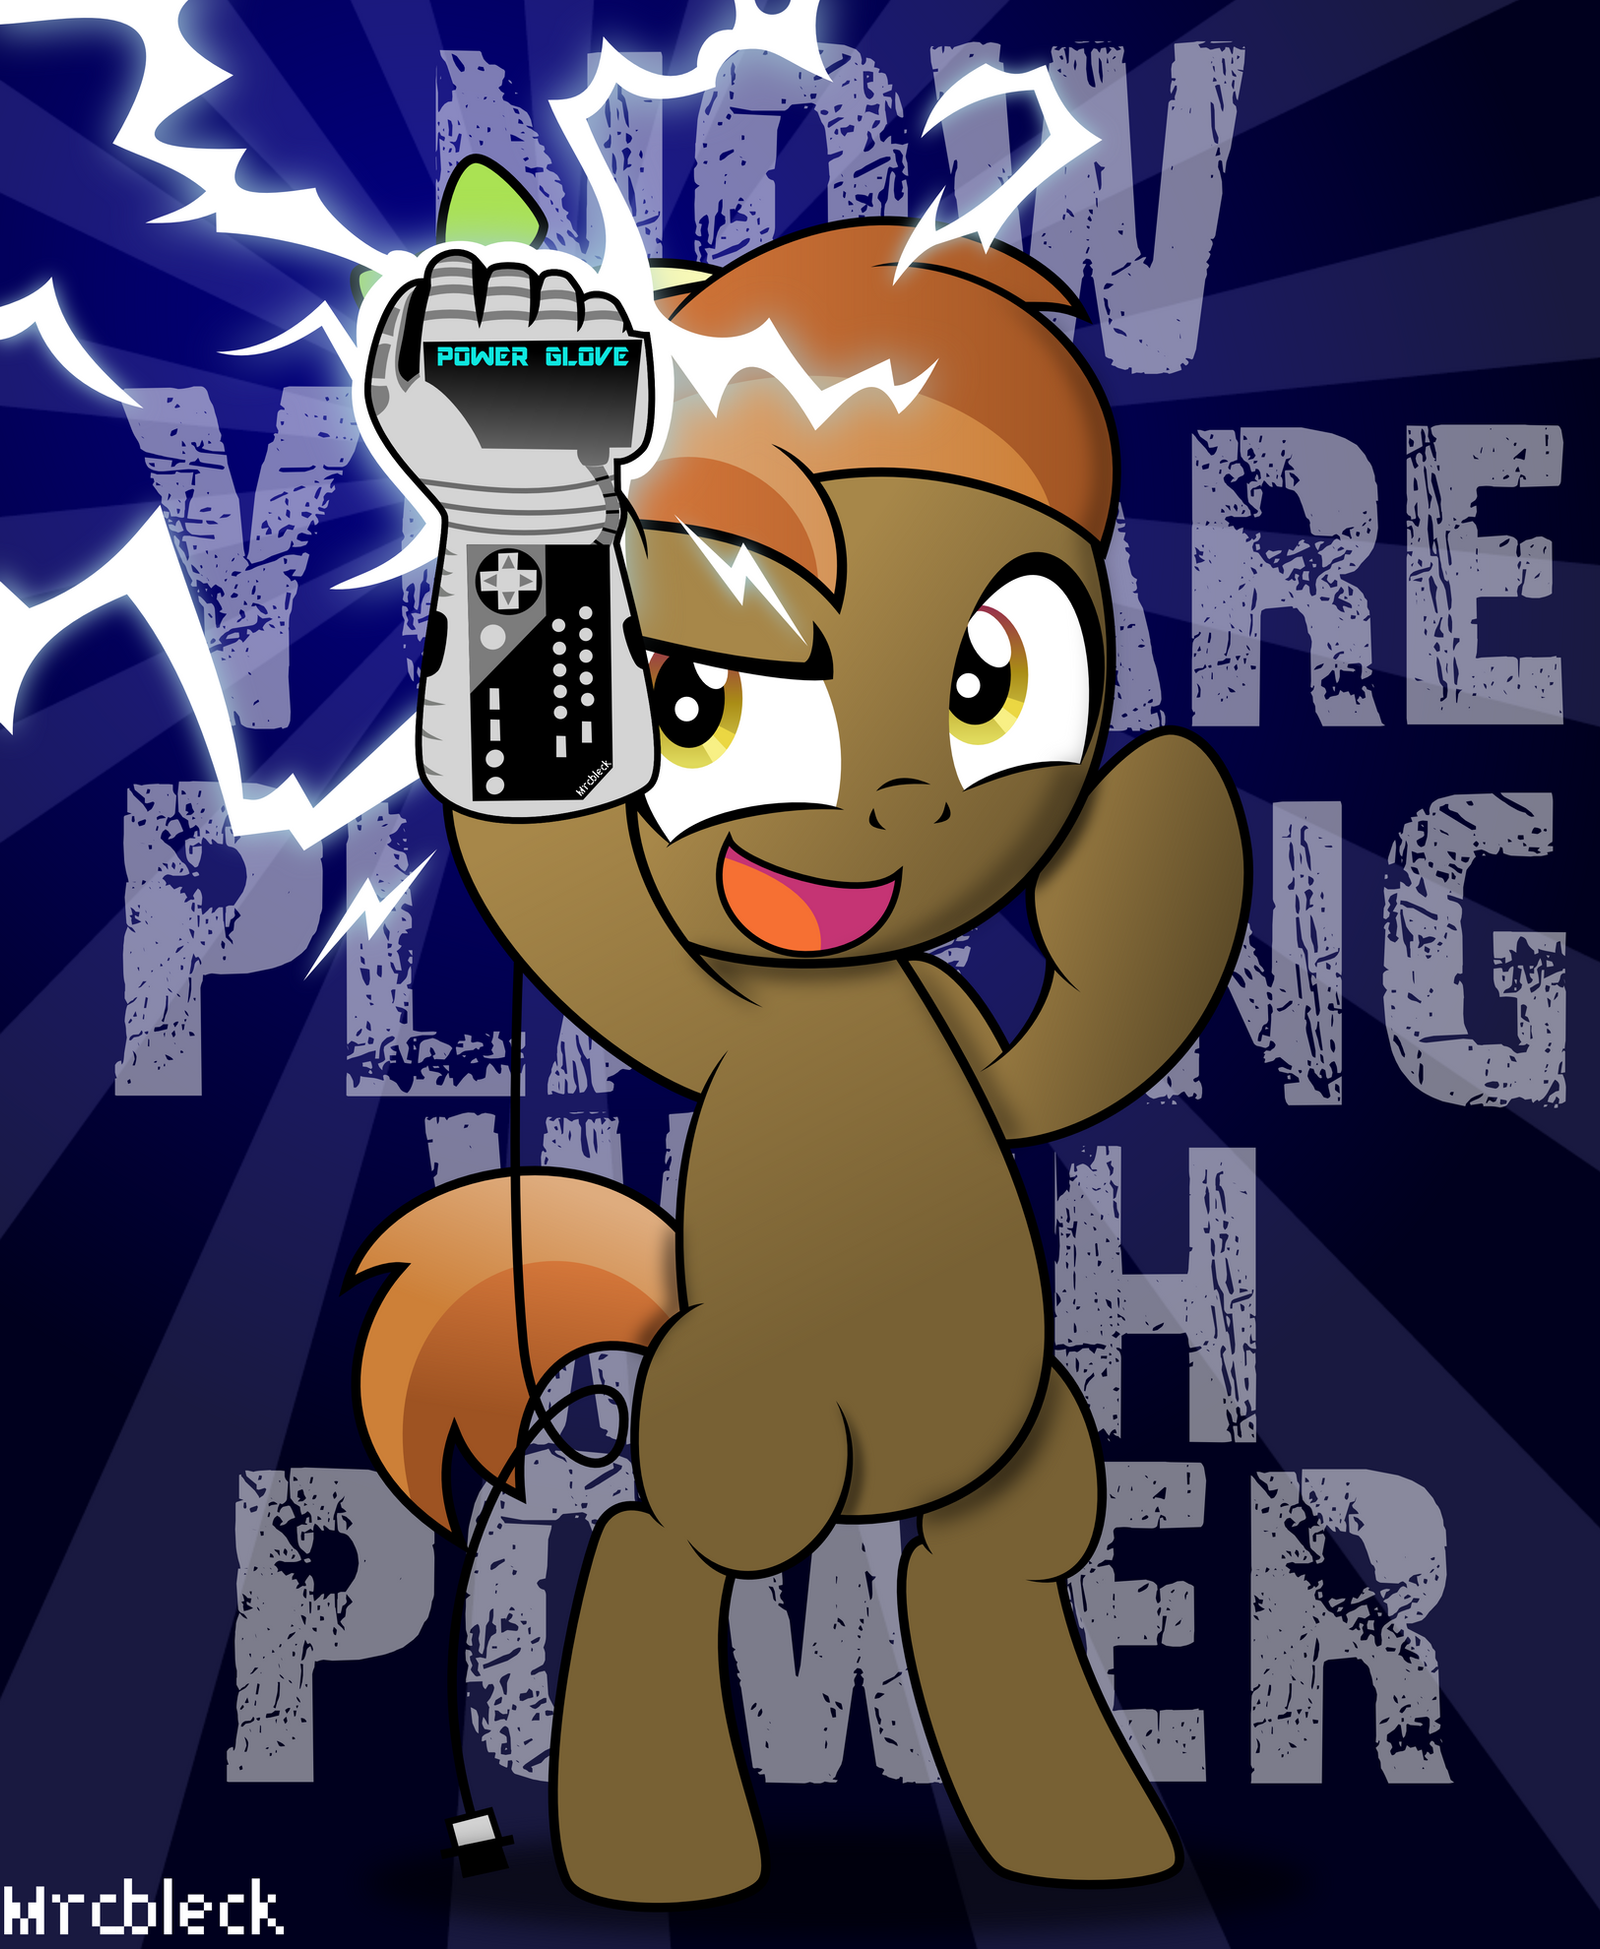 NOW YOU ARE PLAYING WITH POWER!! by MrCbleck